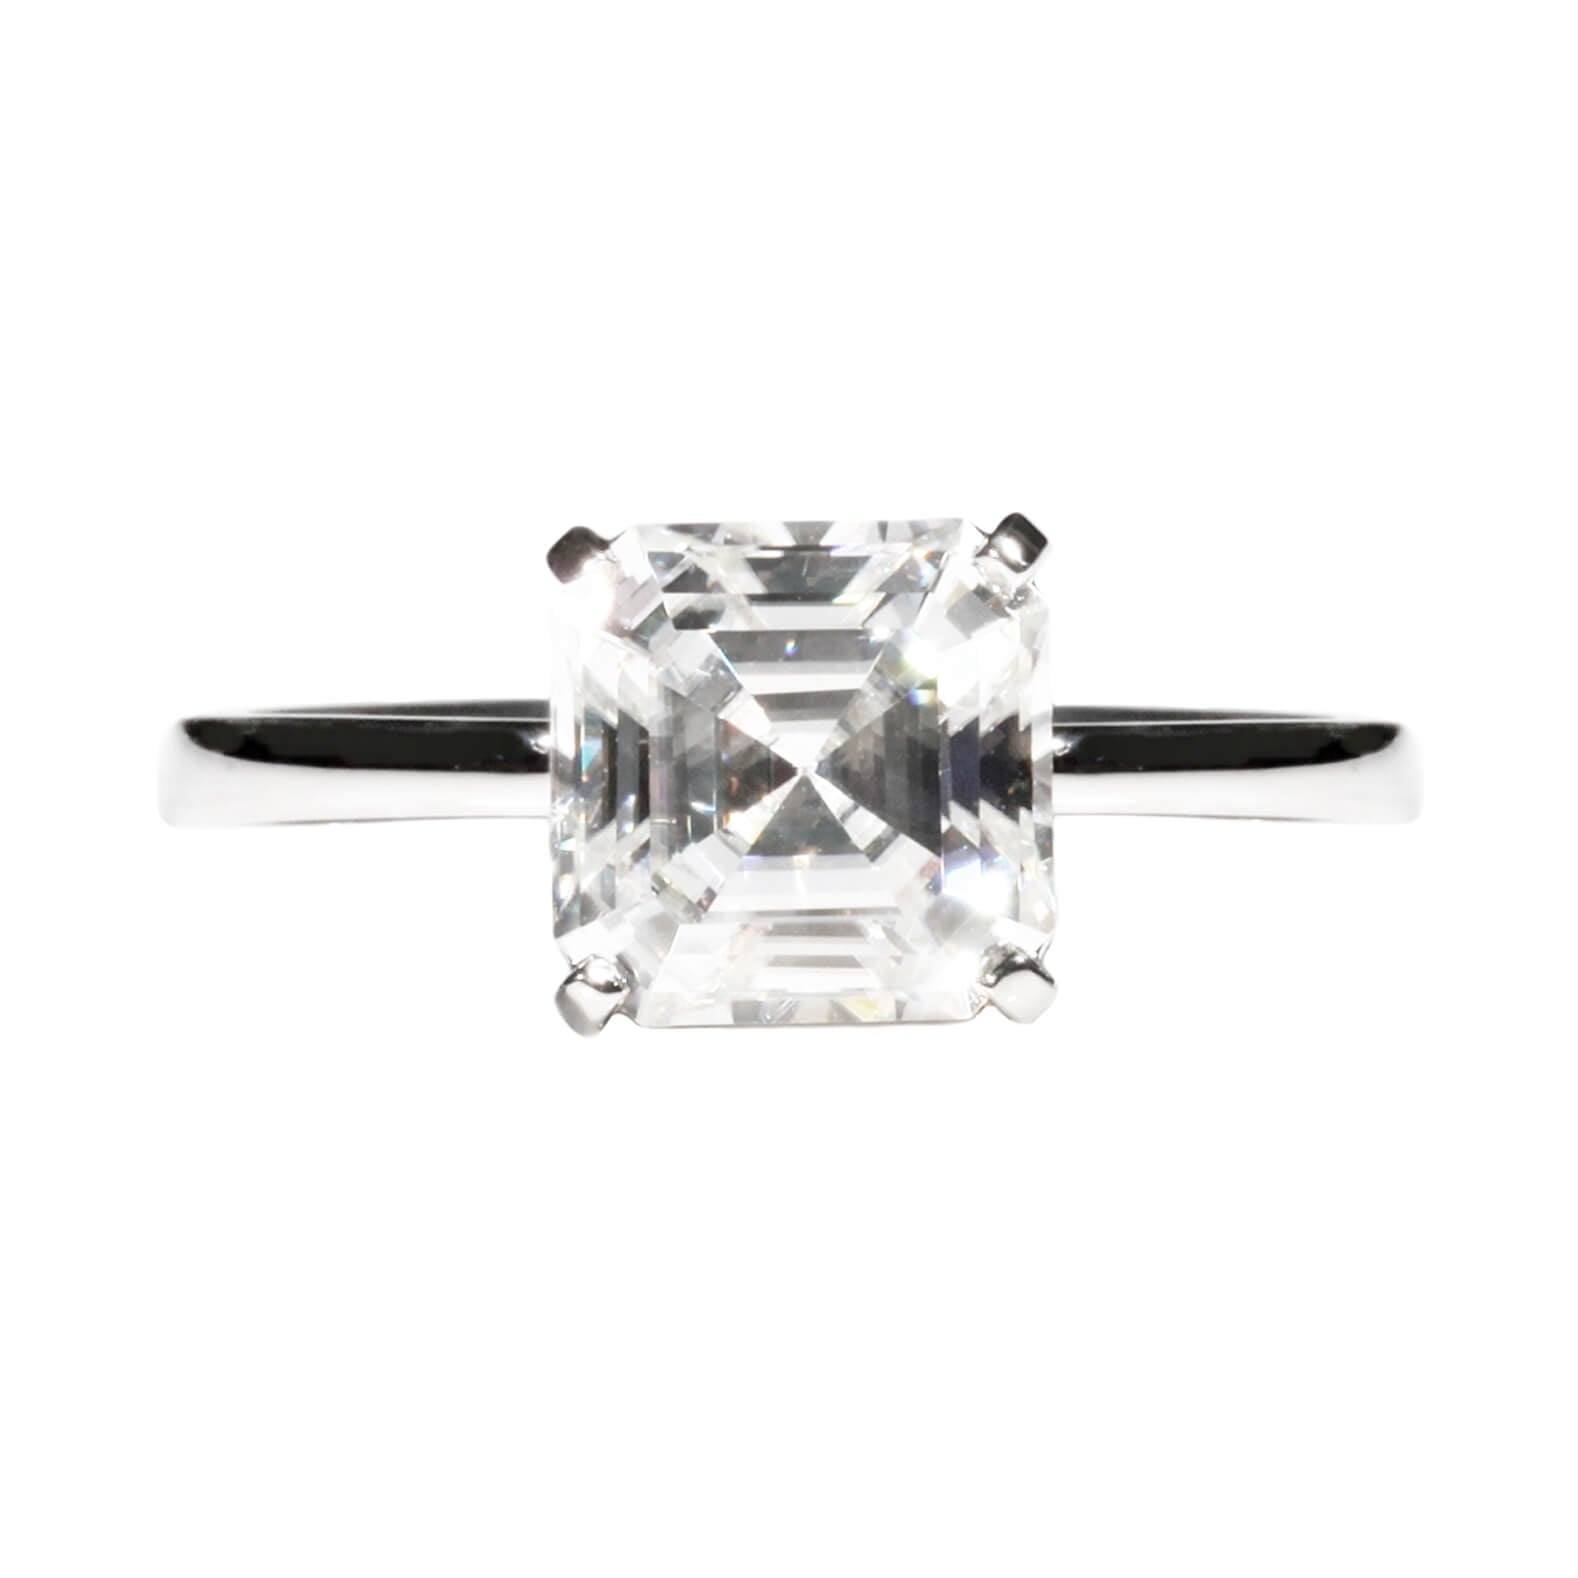 3 Carat Asscher Moissanite in 18K White Gold